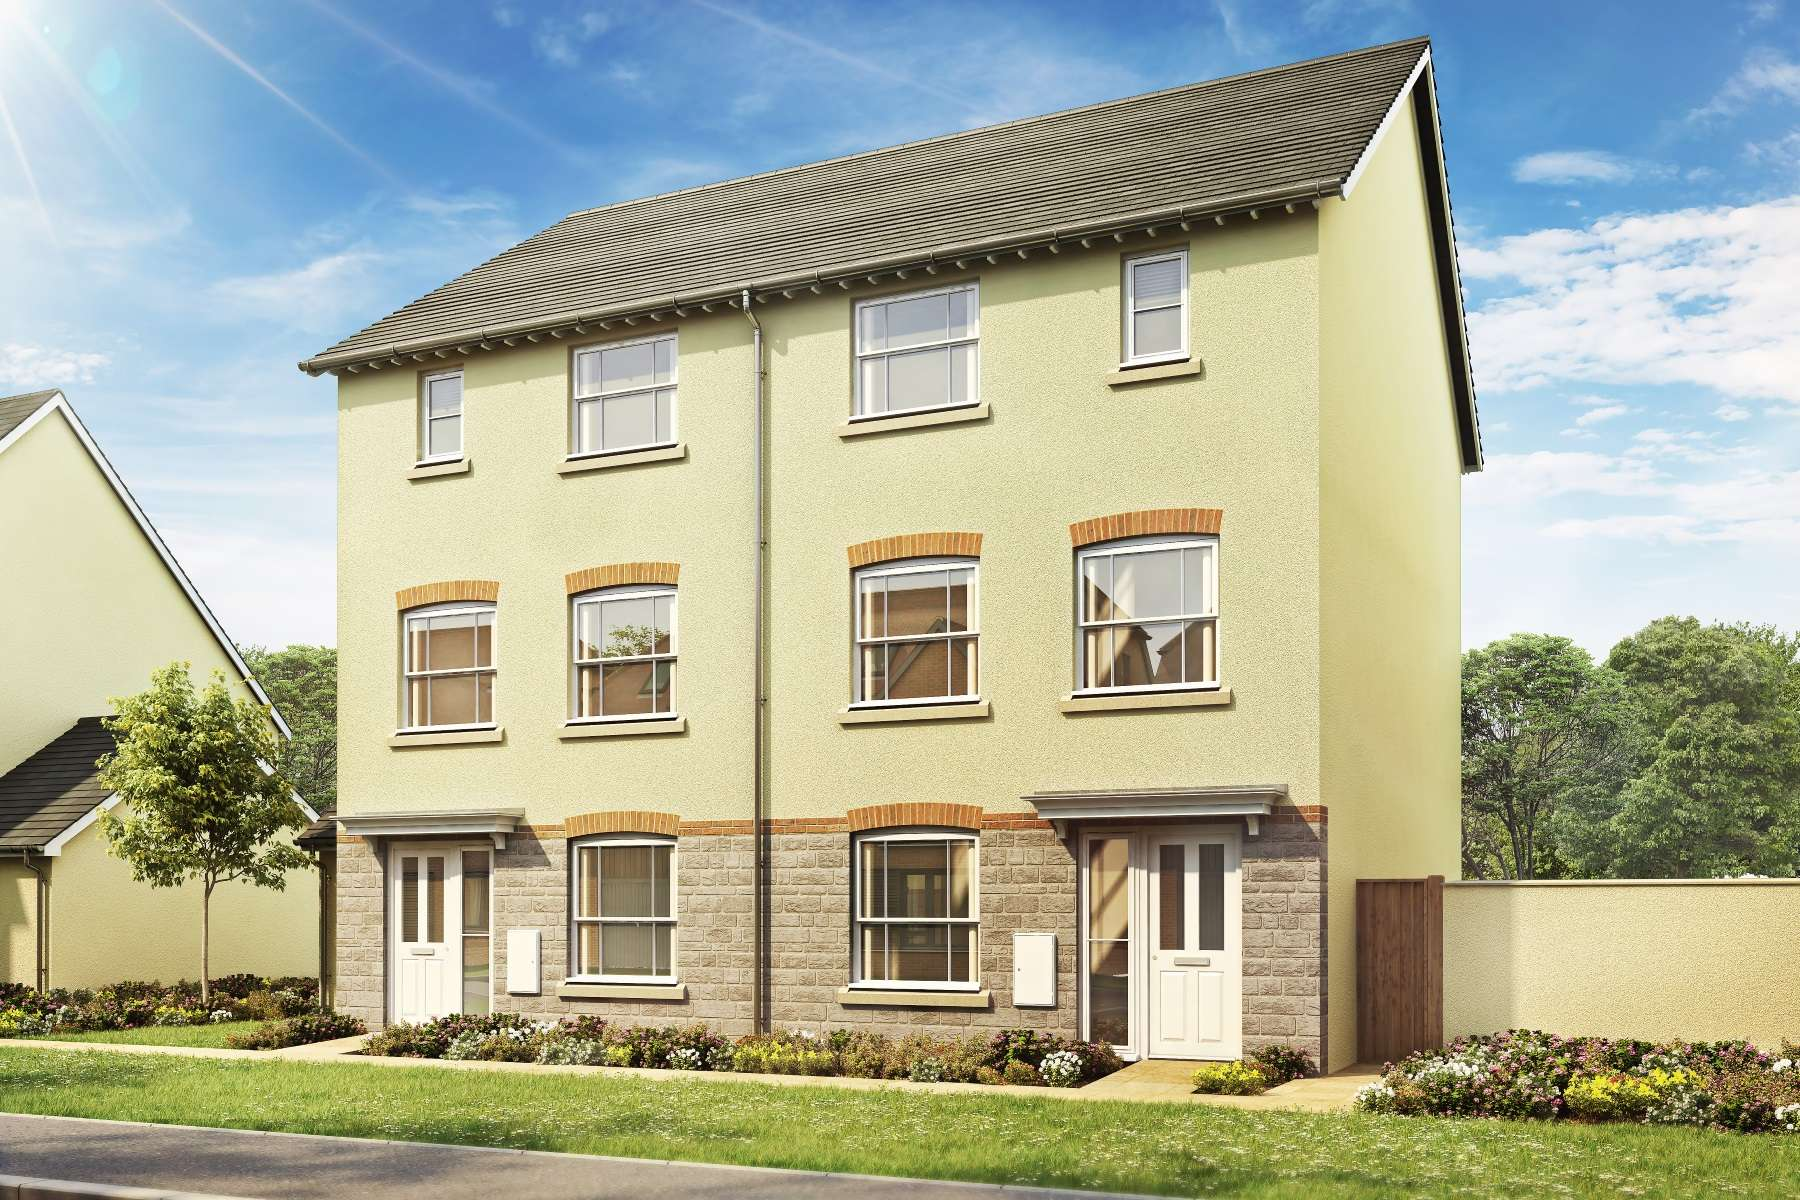 The Danbury